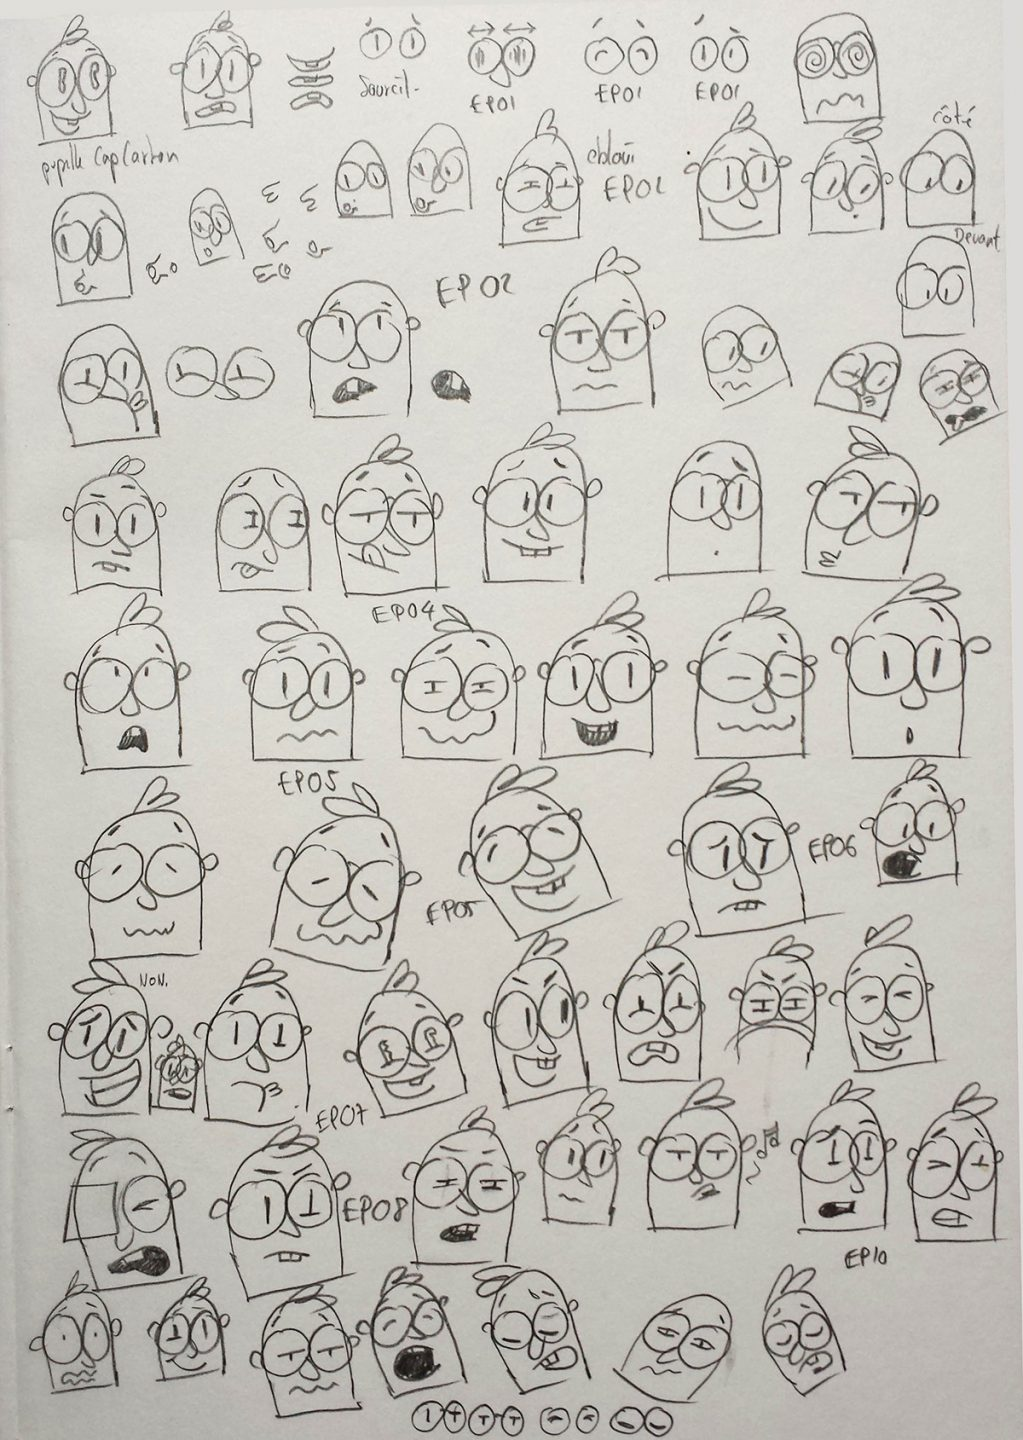 Expression sheet for the character Mr. Carton.